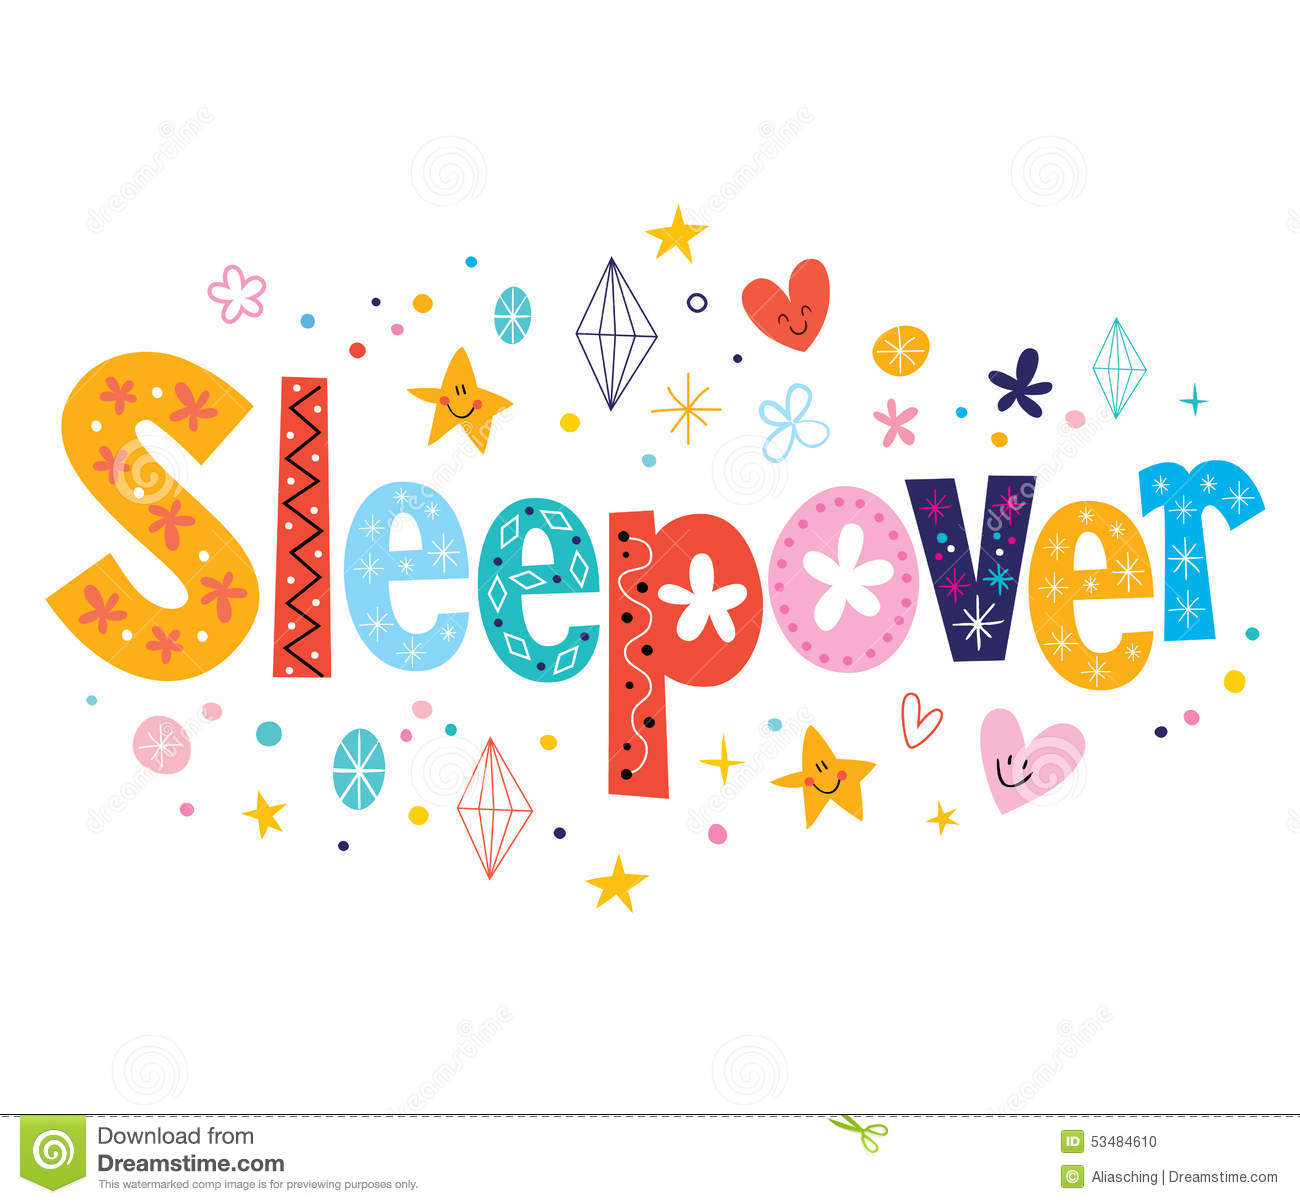 Sleepover Stock Photo